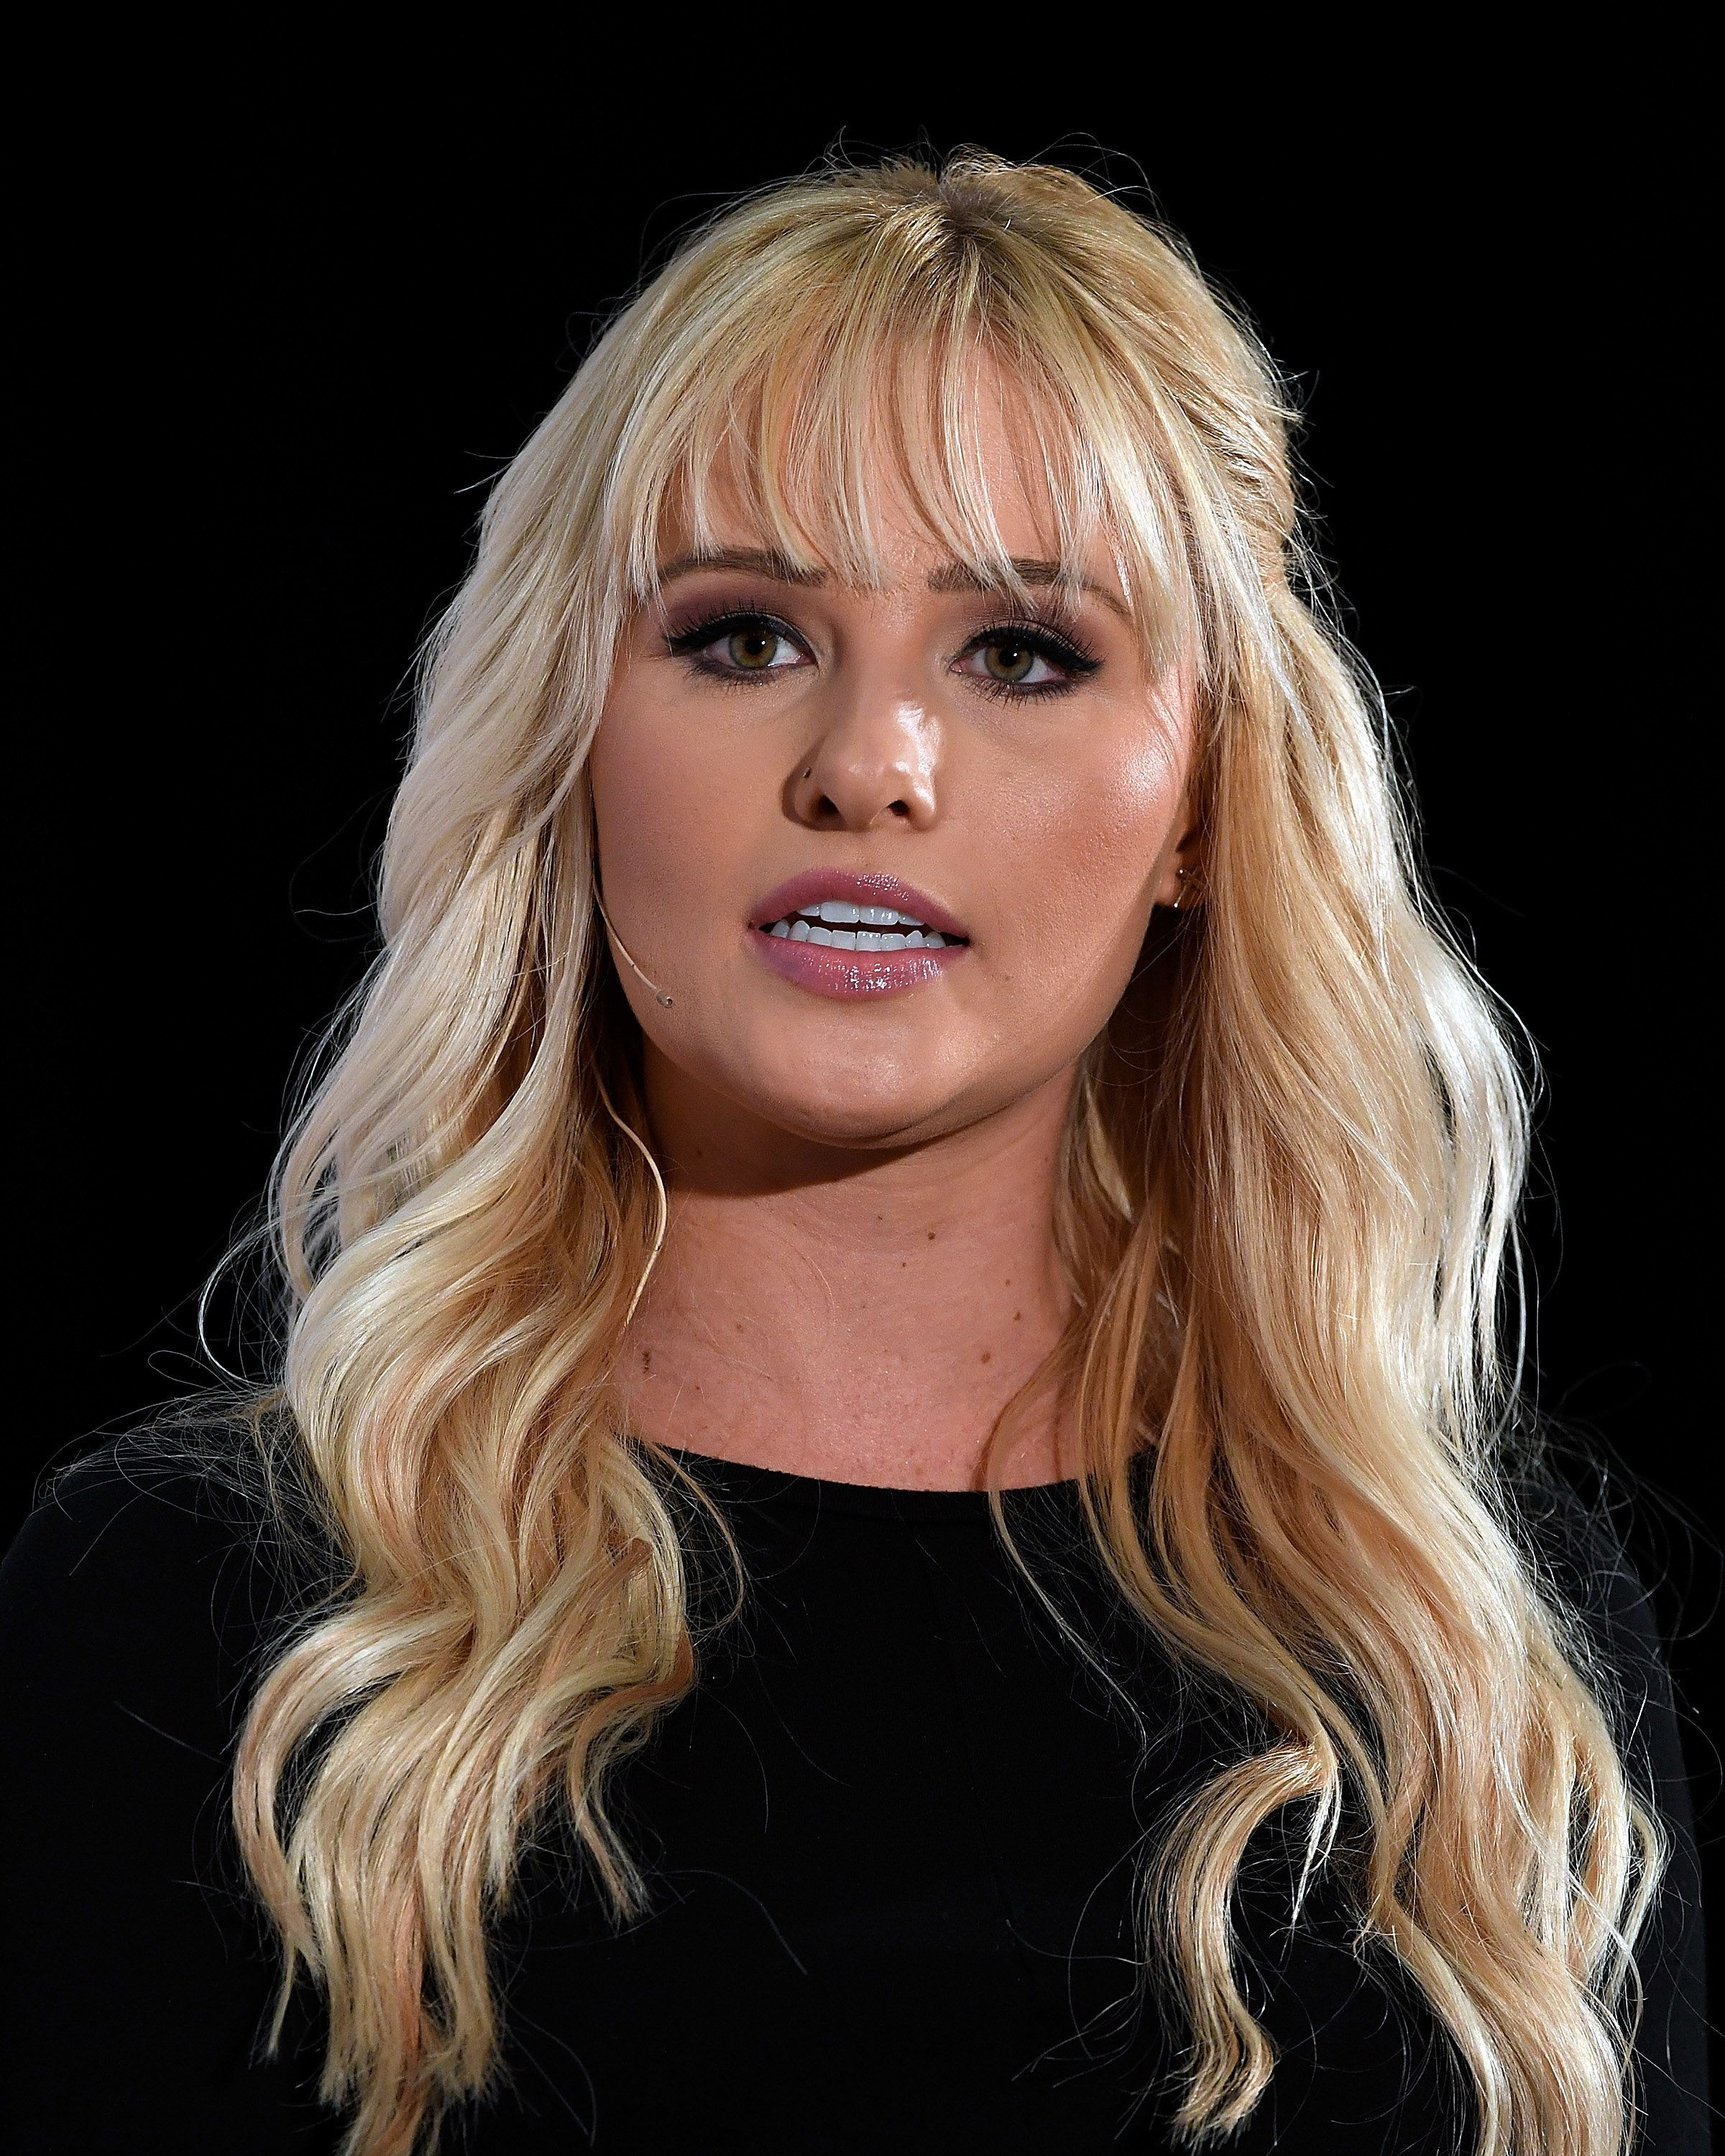 LOS ANGELES, CA - OCTOBER 21:  Conservative commentator Tomi Lahren speaks during Politicon 2018 at Los Angeles Convention Center on October 21, 2018 in Los Angeles, California.  (Photo by Michael S. Schwartz/Getty Images)